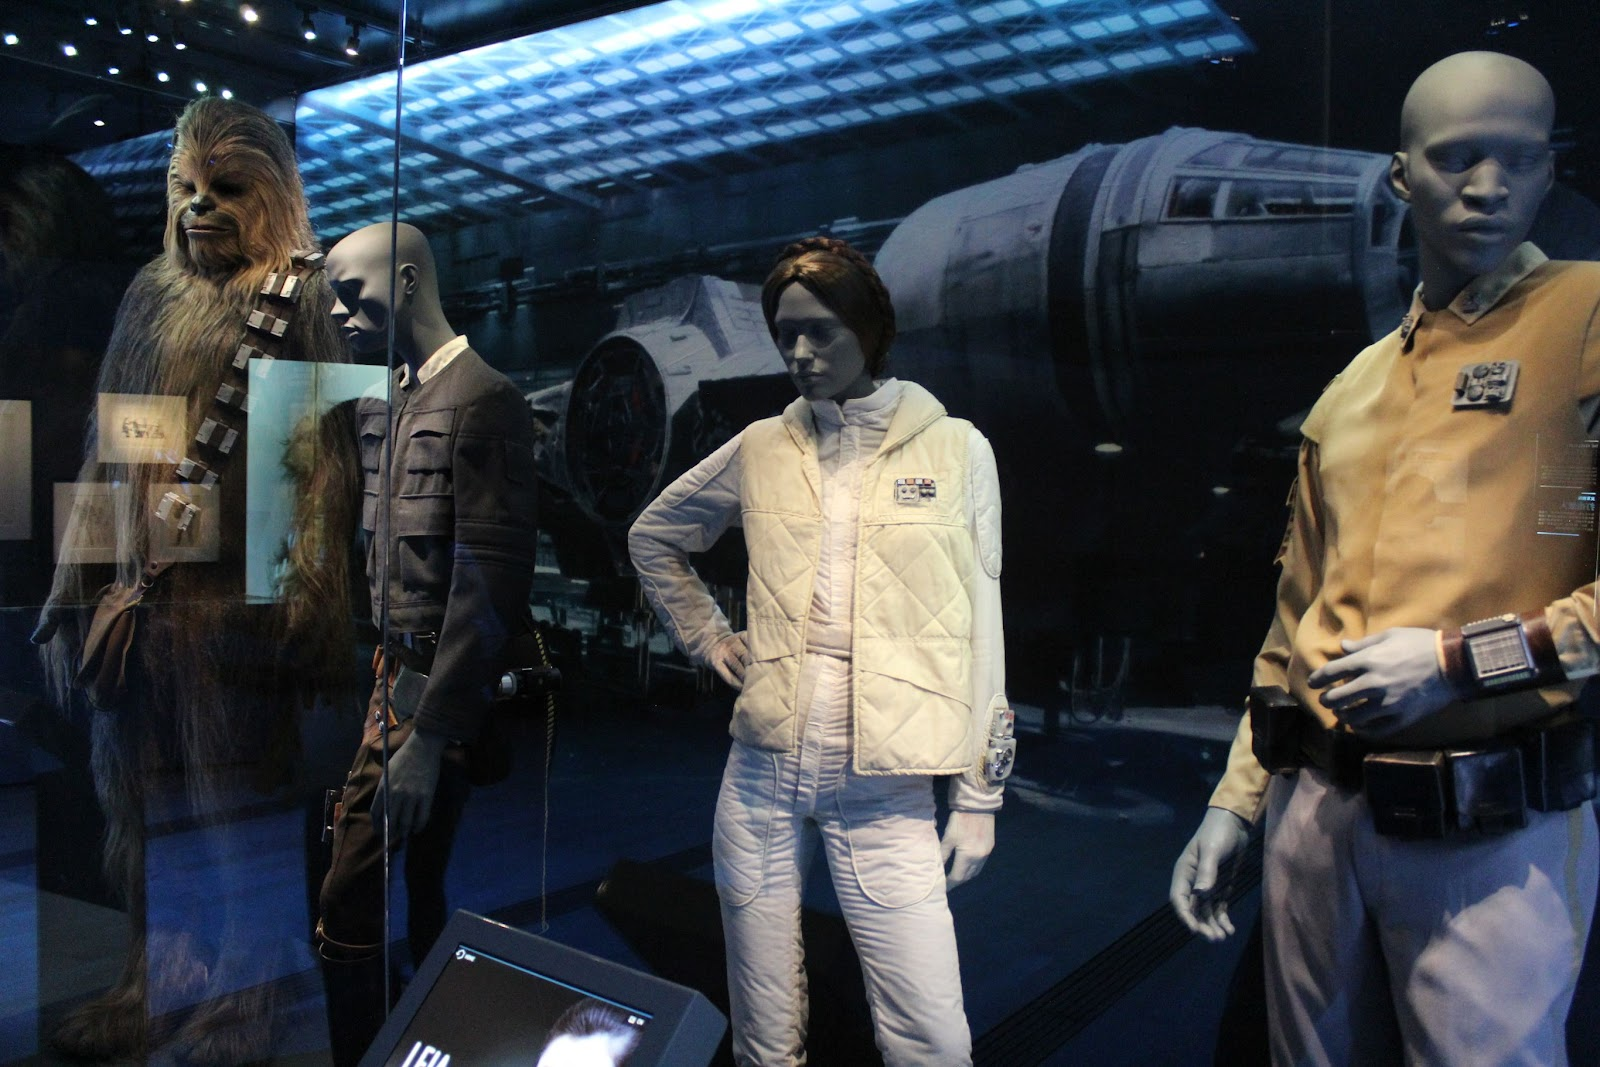 Costumes and models made for Star Wars films